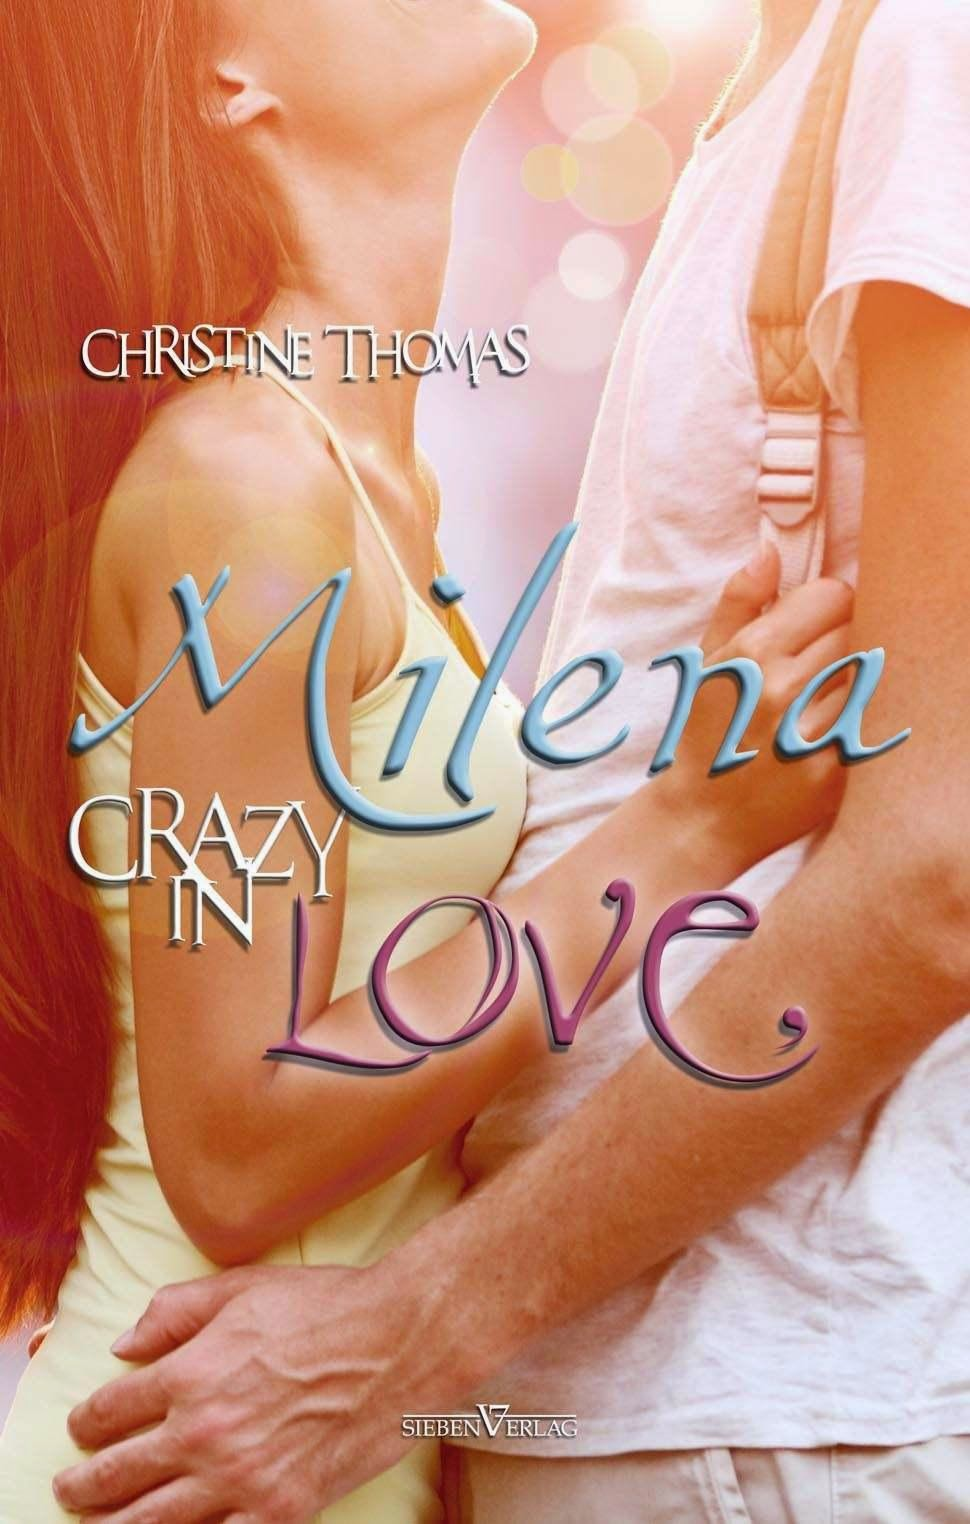 http://www.amazon.de/Milena-Crazy-Love-Christine-Thomas-ebook/dp/B00JZMM124/ref=sr_1_4_bnp_1_kin?ie=UTF8&qid=1410620013&sr=8-4&keywords=crazy+in+love